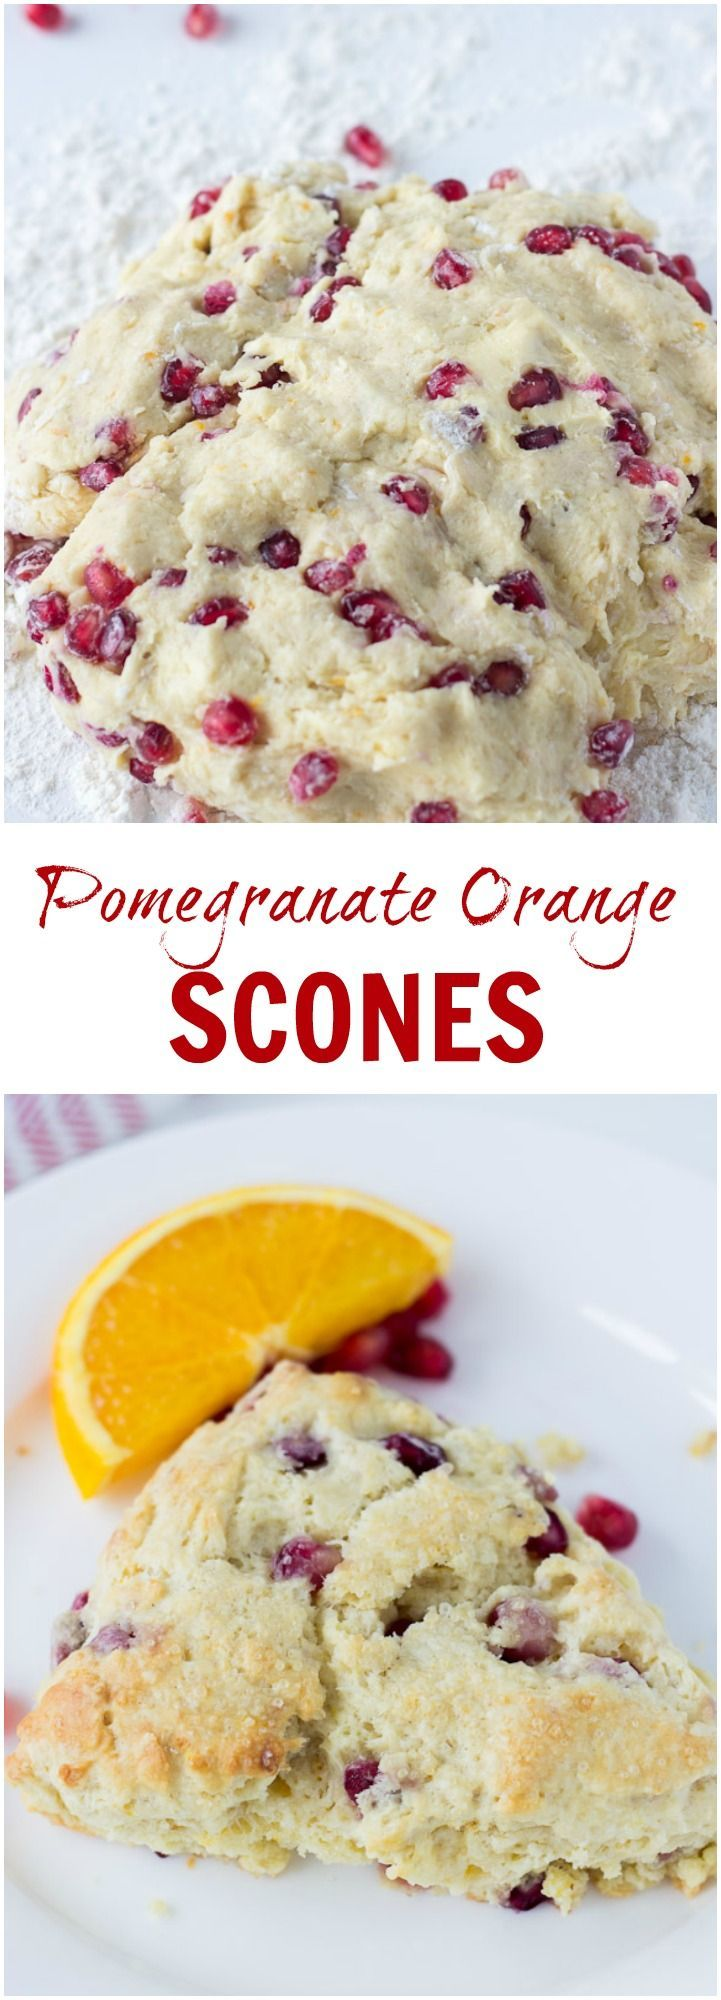 Buttery, soft and sweetPomegranate Orange Scones with winter flavors.